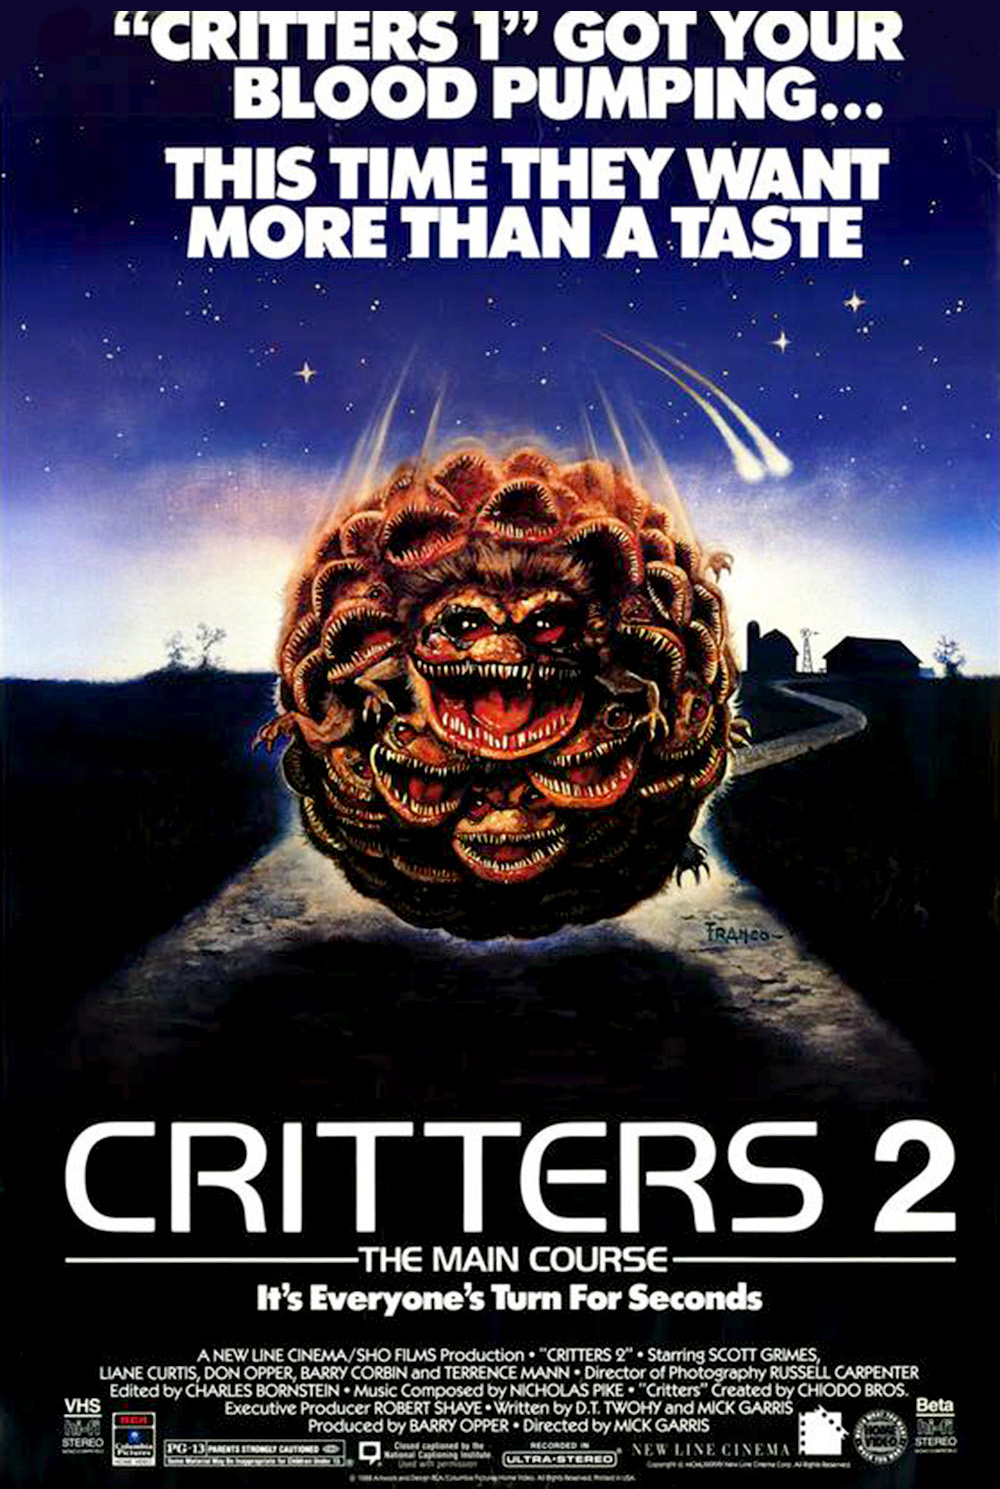 The Critters Collection Blu-ray Review (Scream Factory) - Cultsploitation